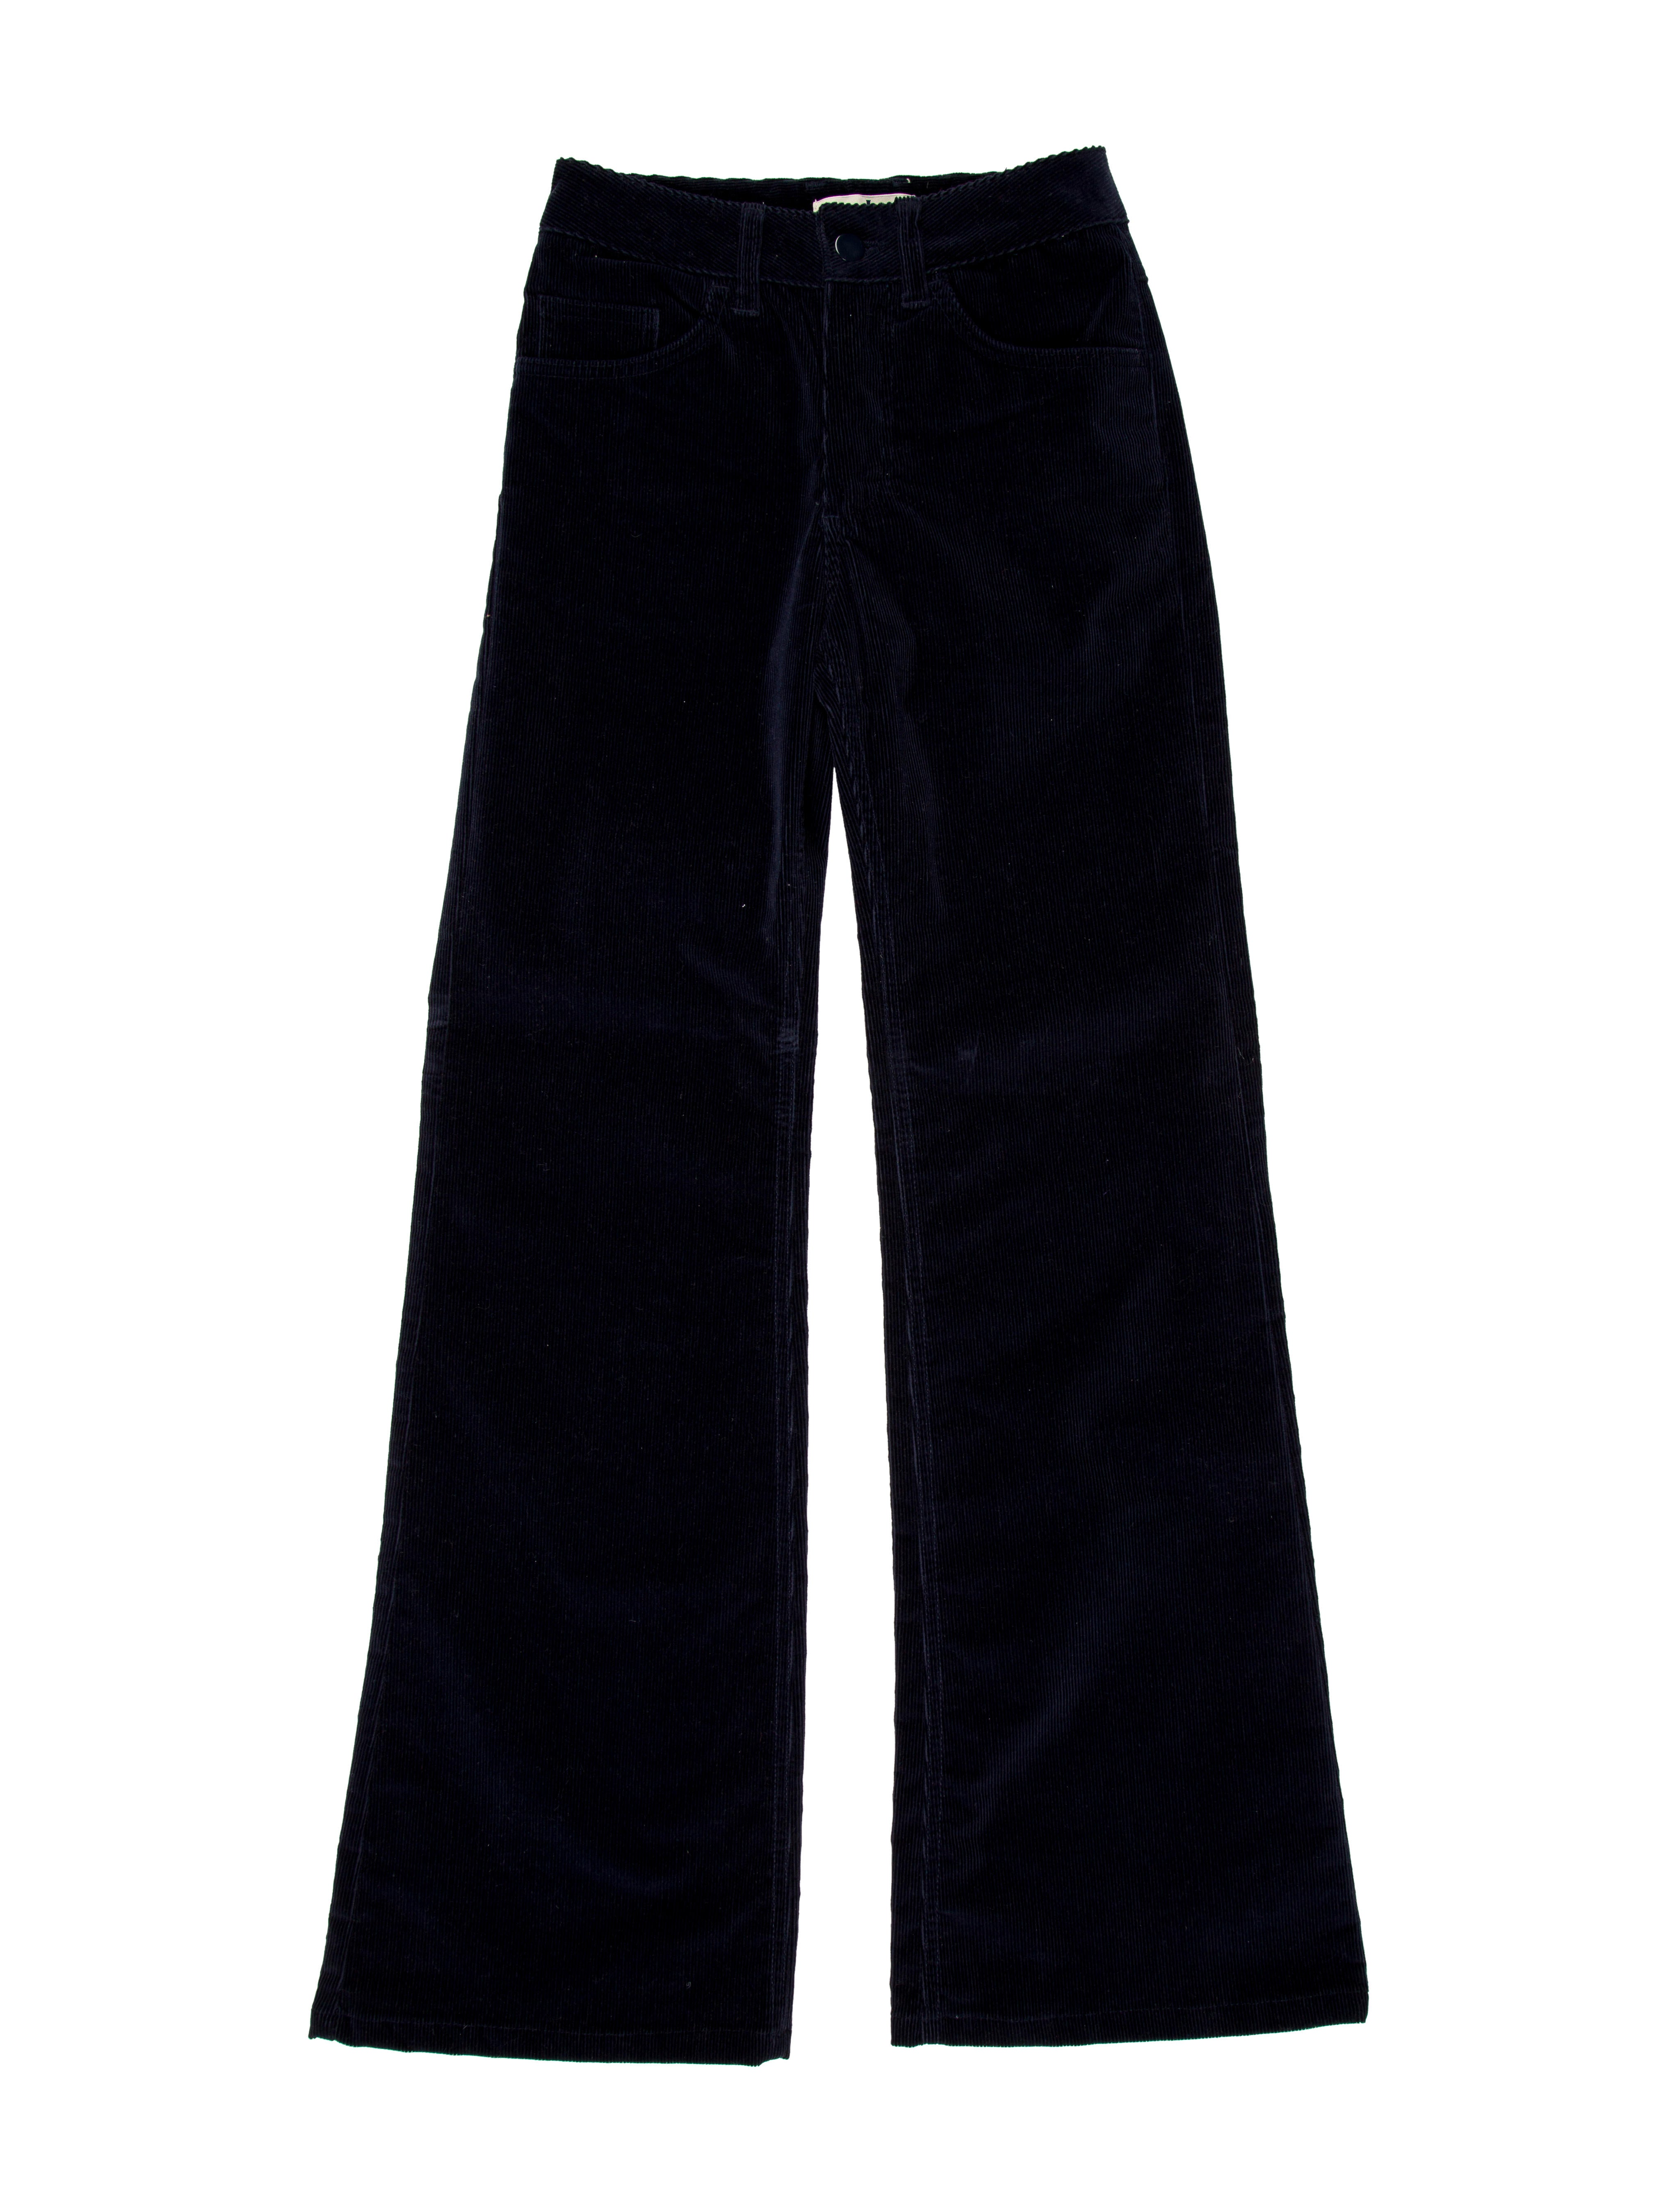 Soojun Women's Corduroy Retro Loose Fit Wide Leg Rolled Up Pant with Packet Shop Best Sellers · Deals of the Day · Fast Shipping · Read Ratings & Reviews.